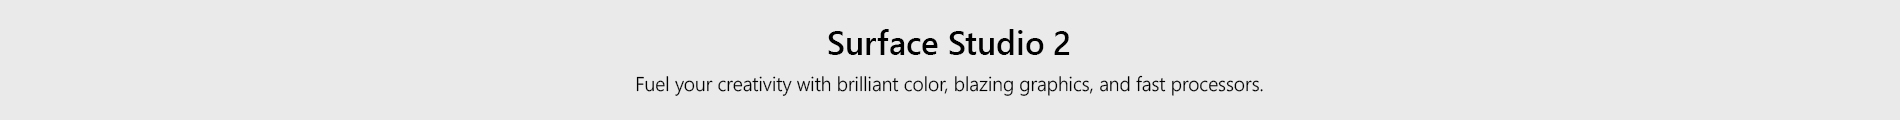 Surface Studio2 Landing Page Header Studio Tile